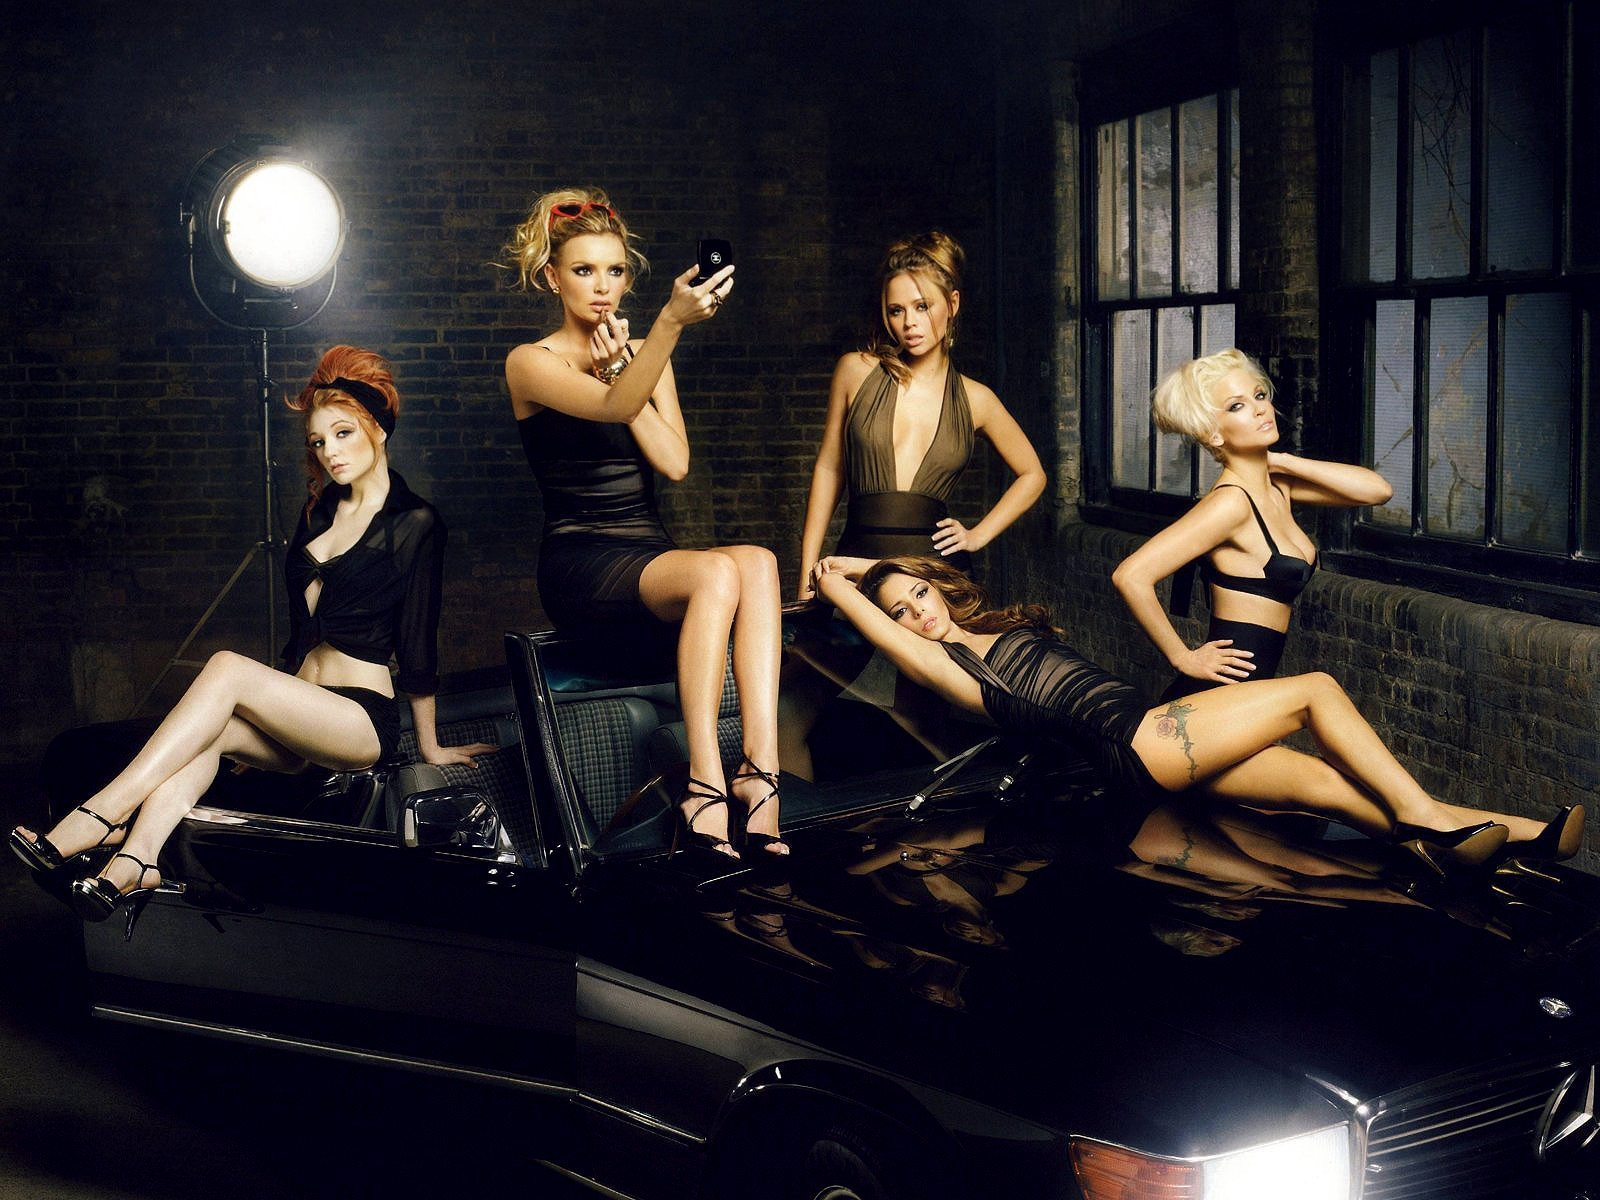 Girls Aloud - News, views, gossip, pictures, video - Chronicle Live Girls aloud pictures 2018